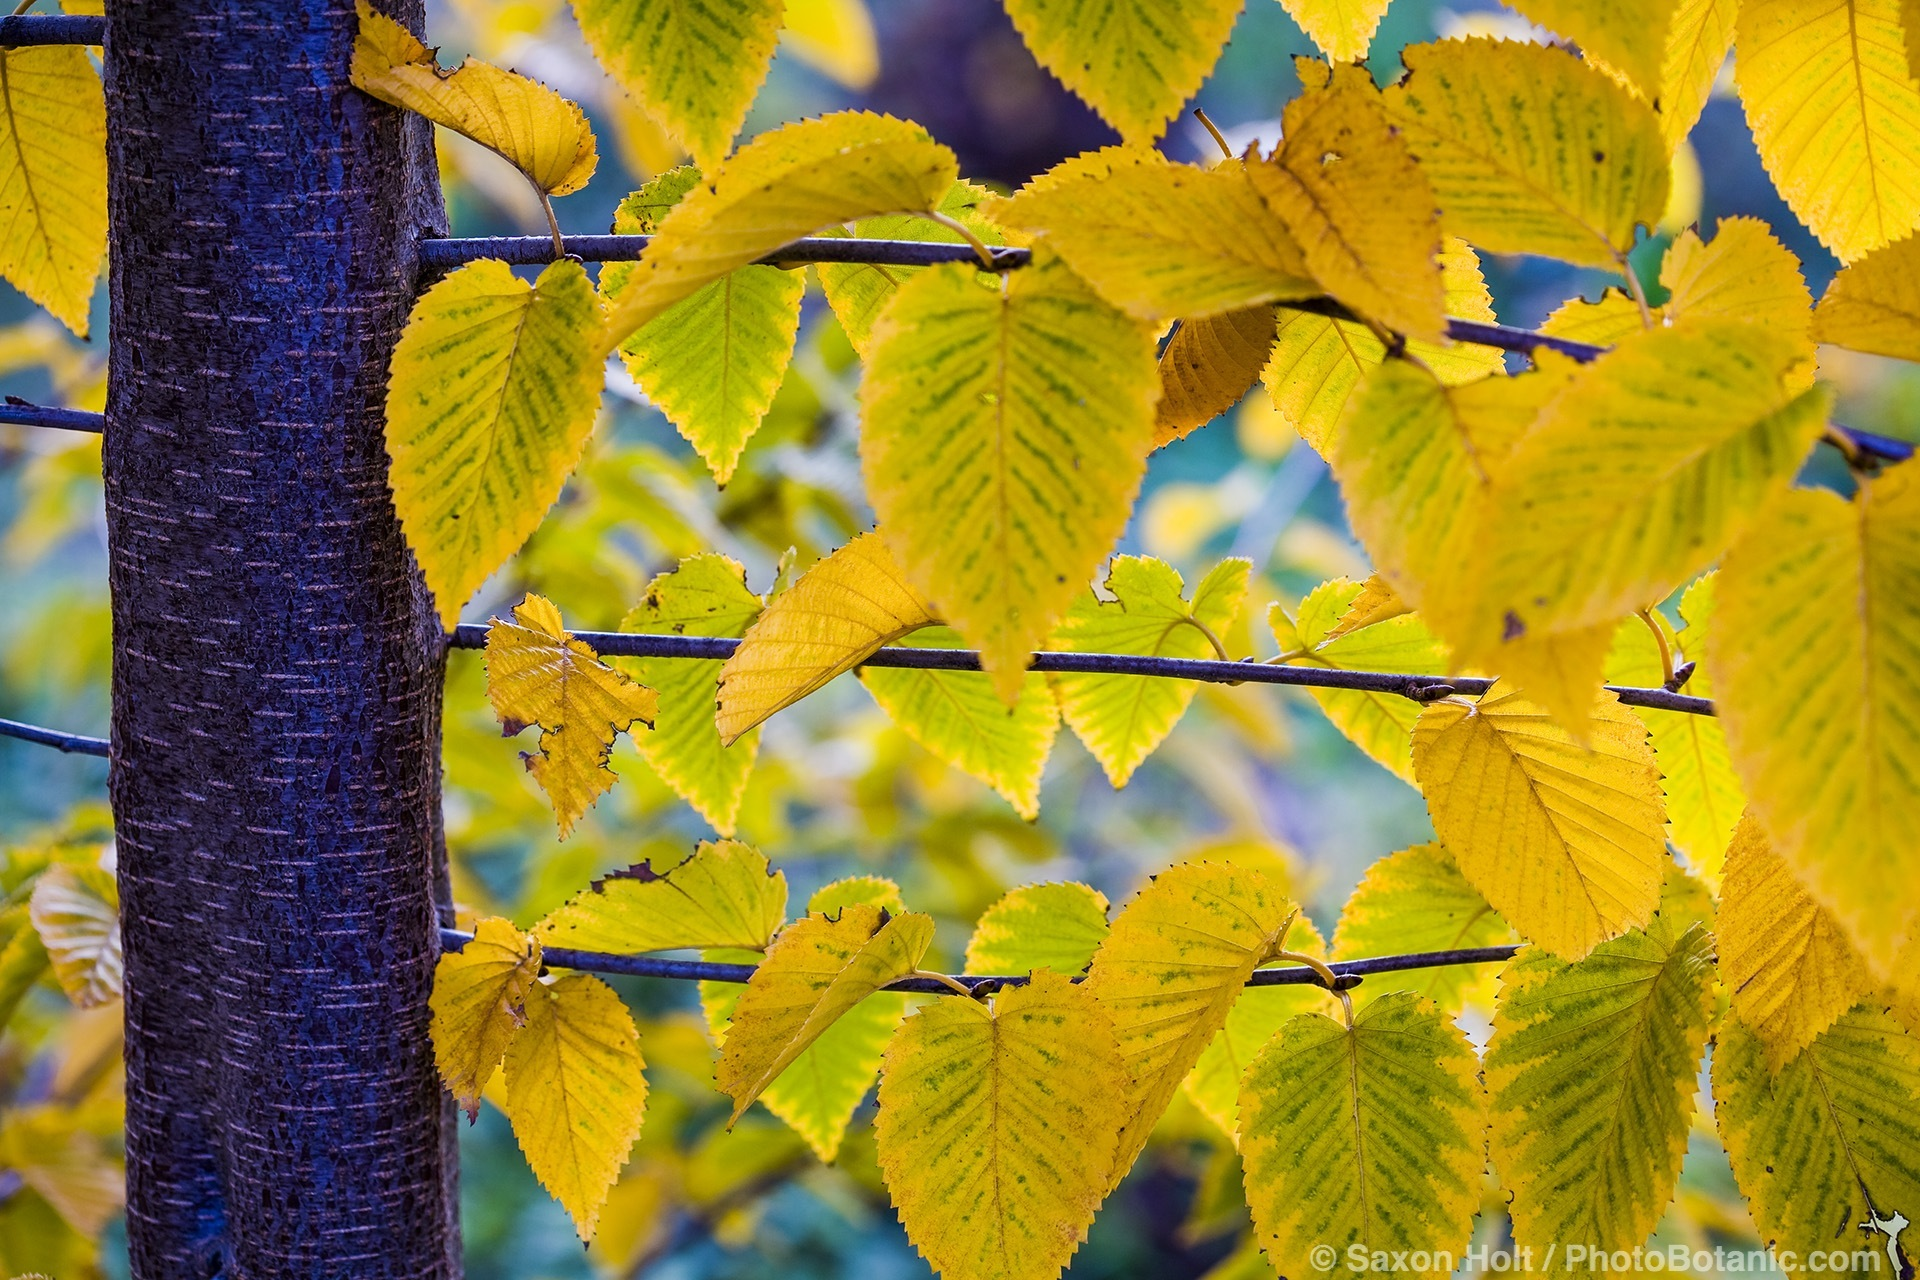 birch tree with yellow autumn leaves